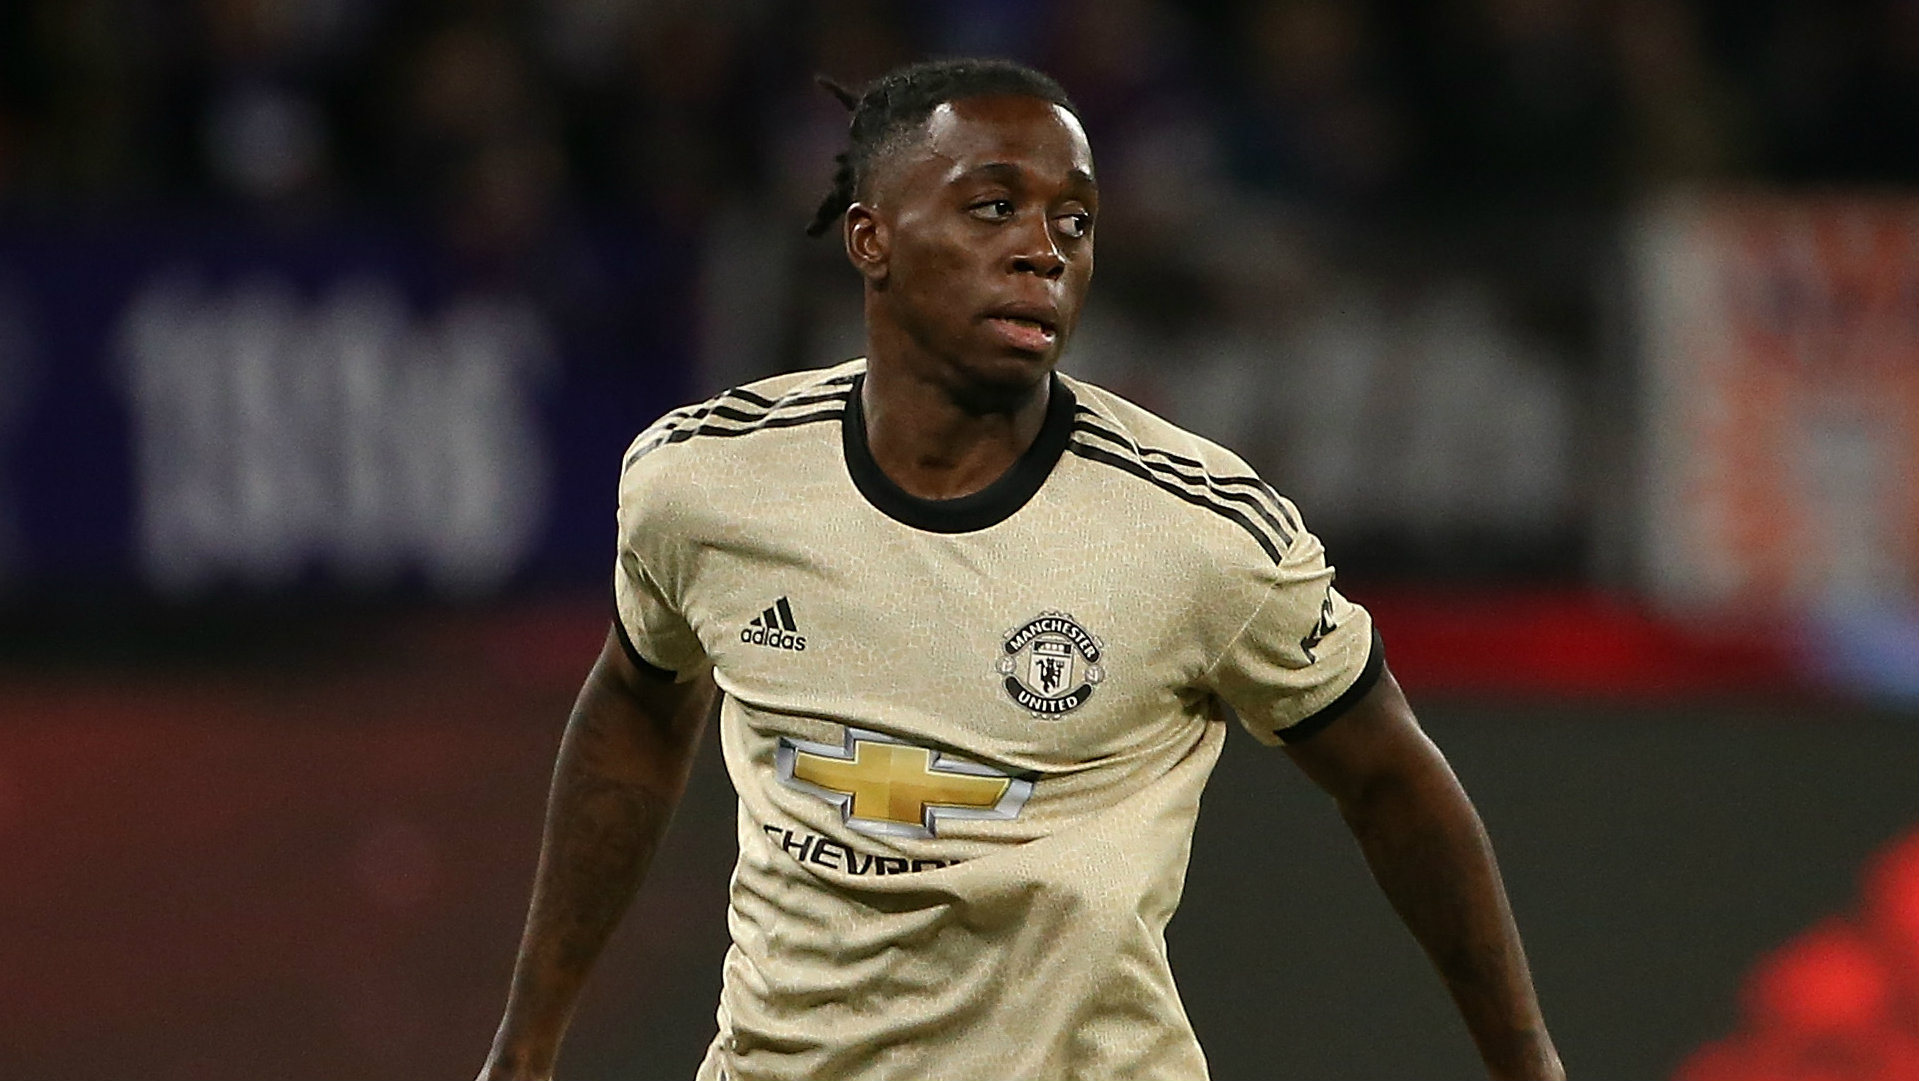 'Zaha's £80m price tag down to Wan-Bissaka' – Palace won't sanction Man Utd & Arsenal sales, says Morrison